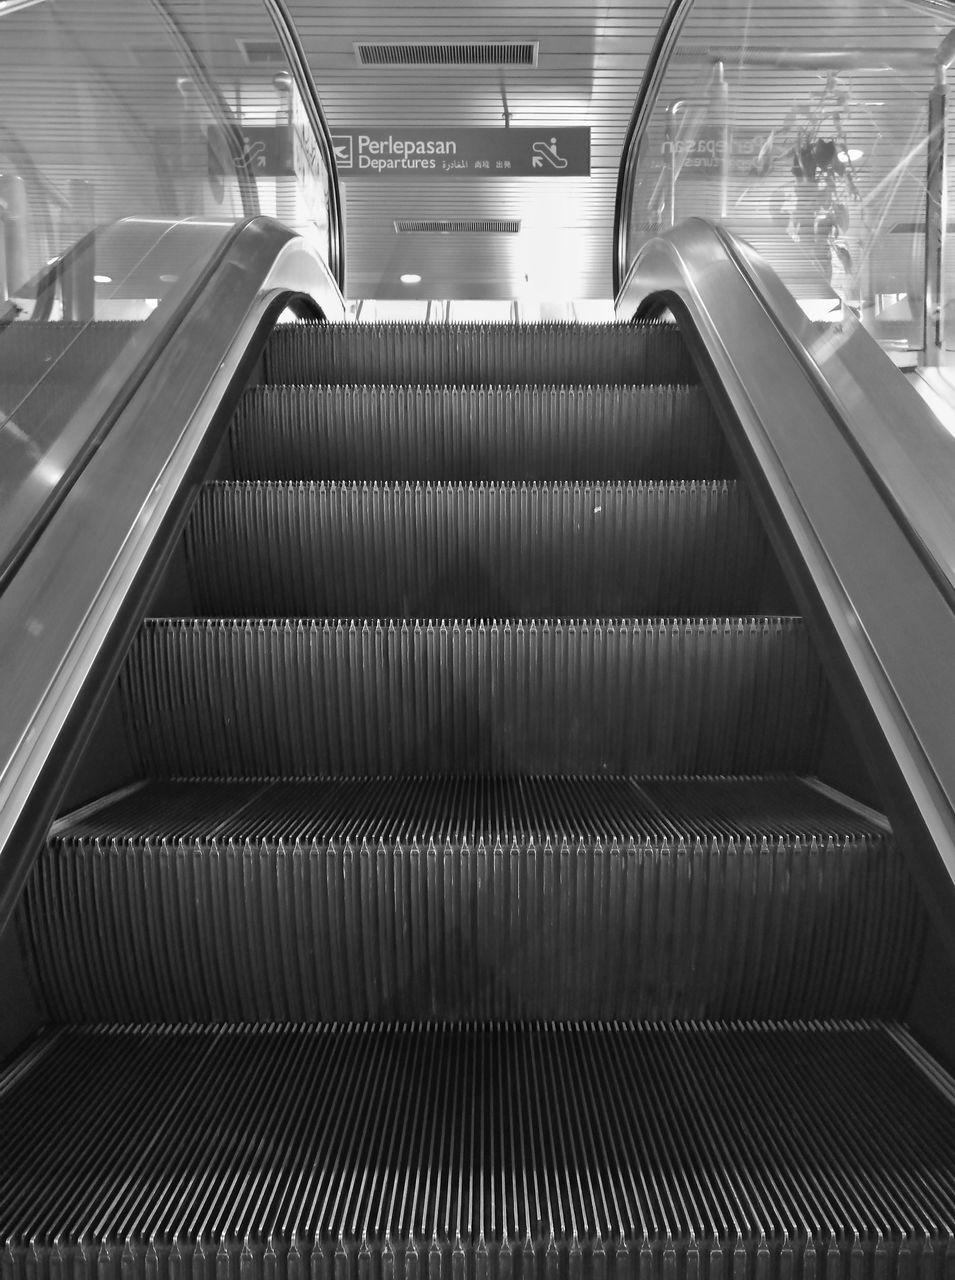 HIGH ANGLE VIEW OF ESCALATOR IN UNDERGROUND